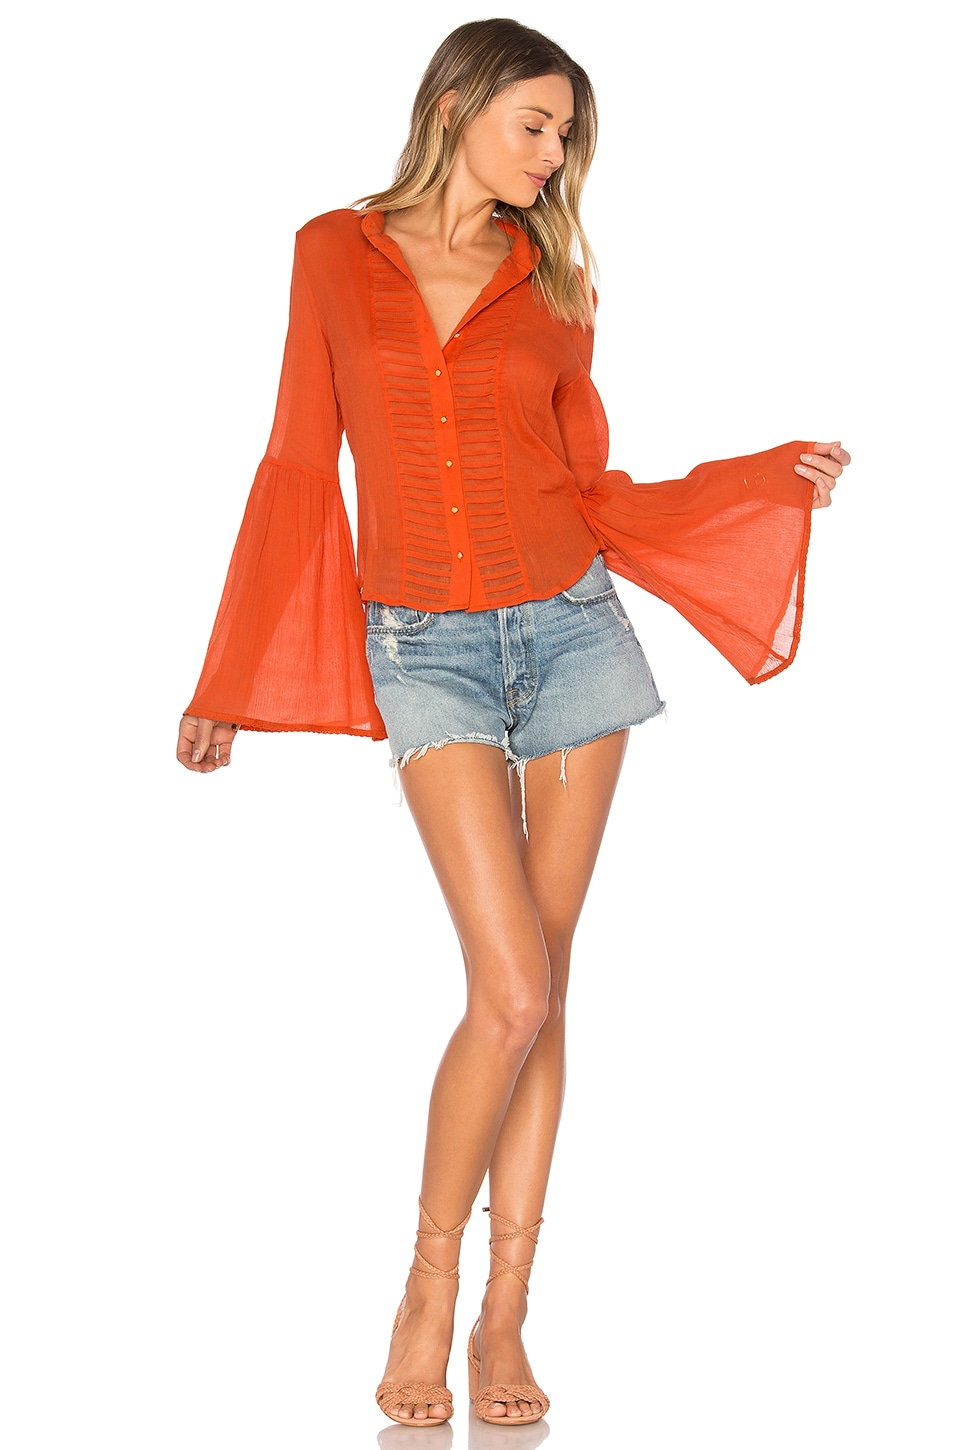 AUGUSTE Old Days Bell Sleeved Shirt in Burnt Orange